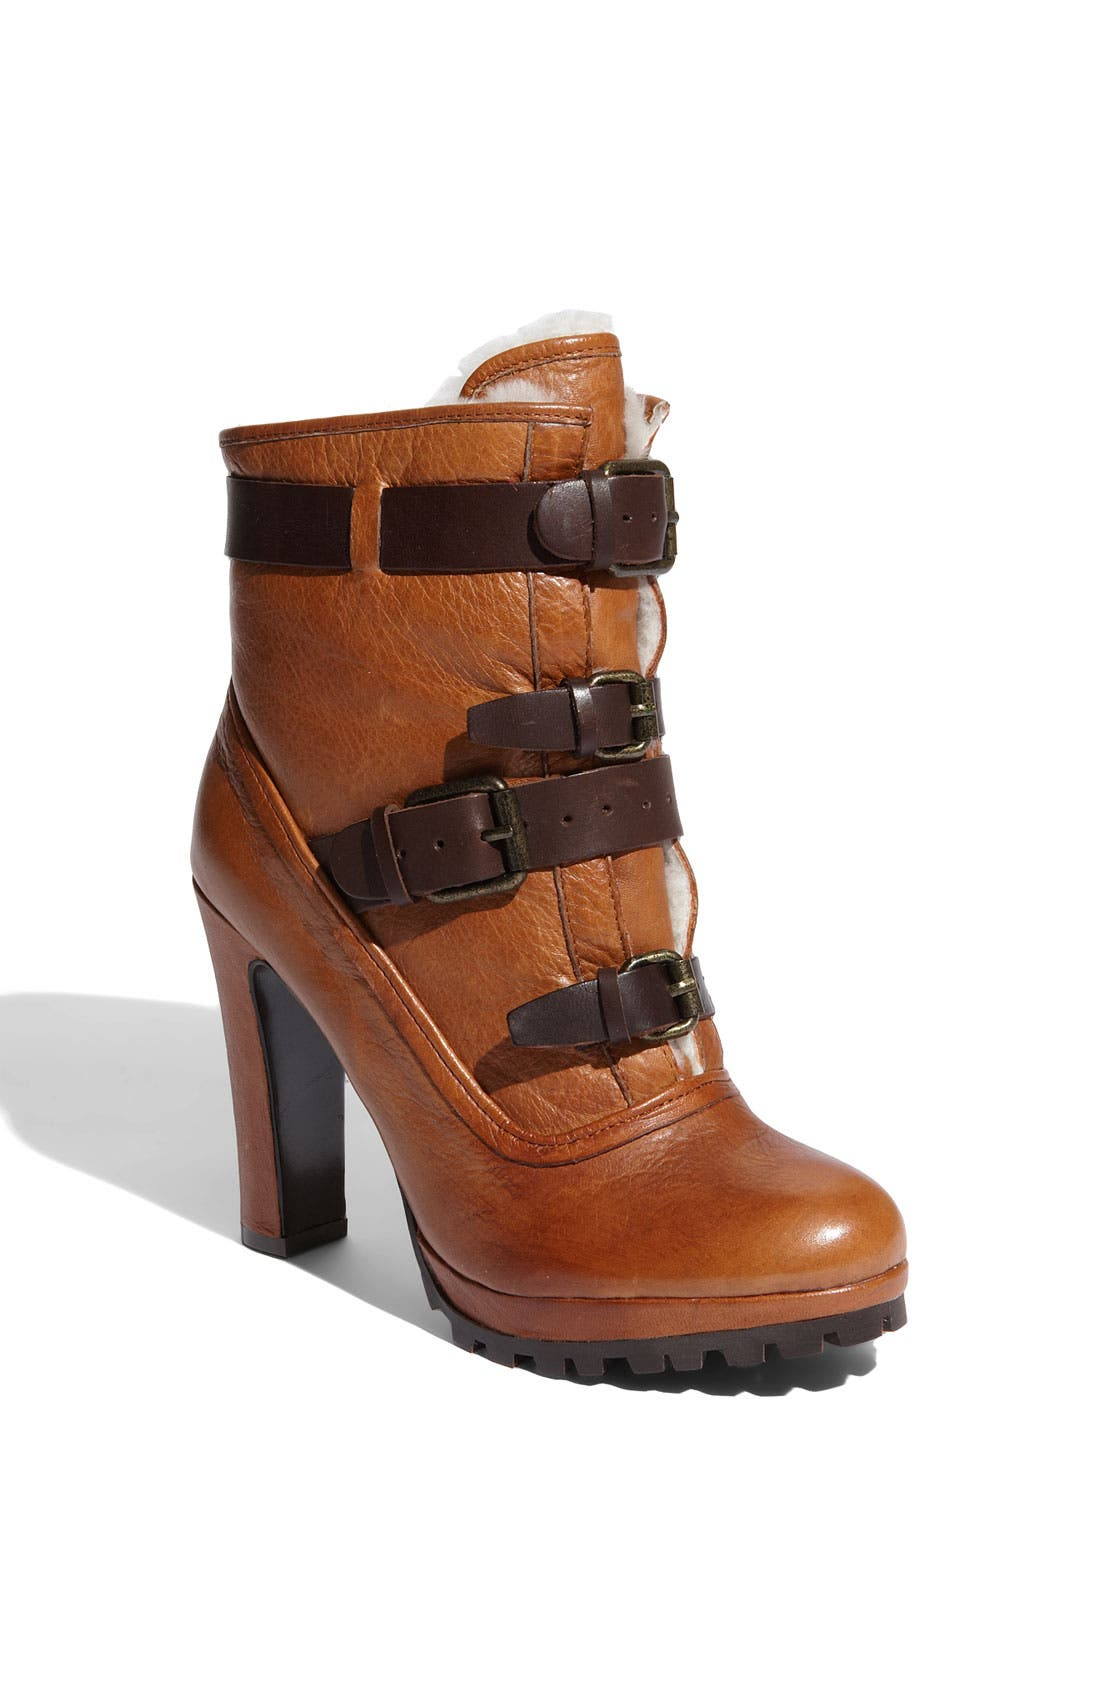 'Josh' Ankle Boot,                             Main thumbnail 1, color,                             Natural Leather